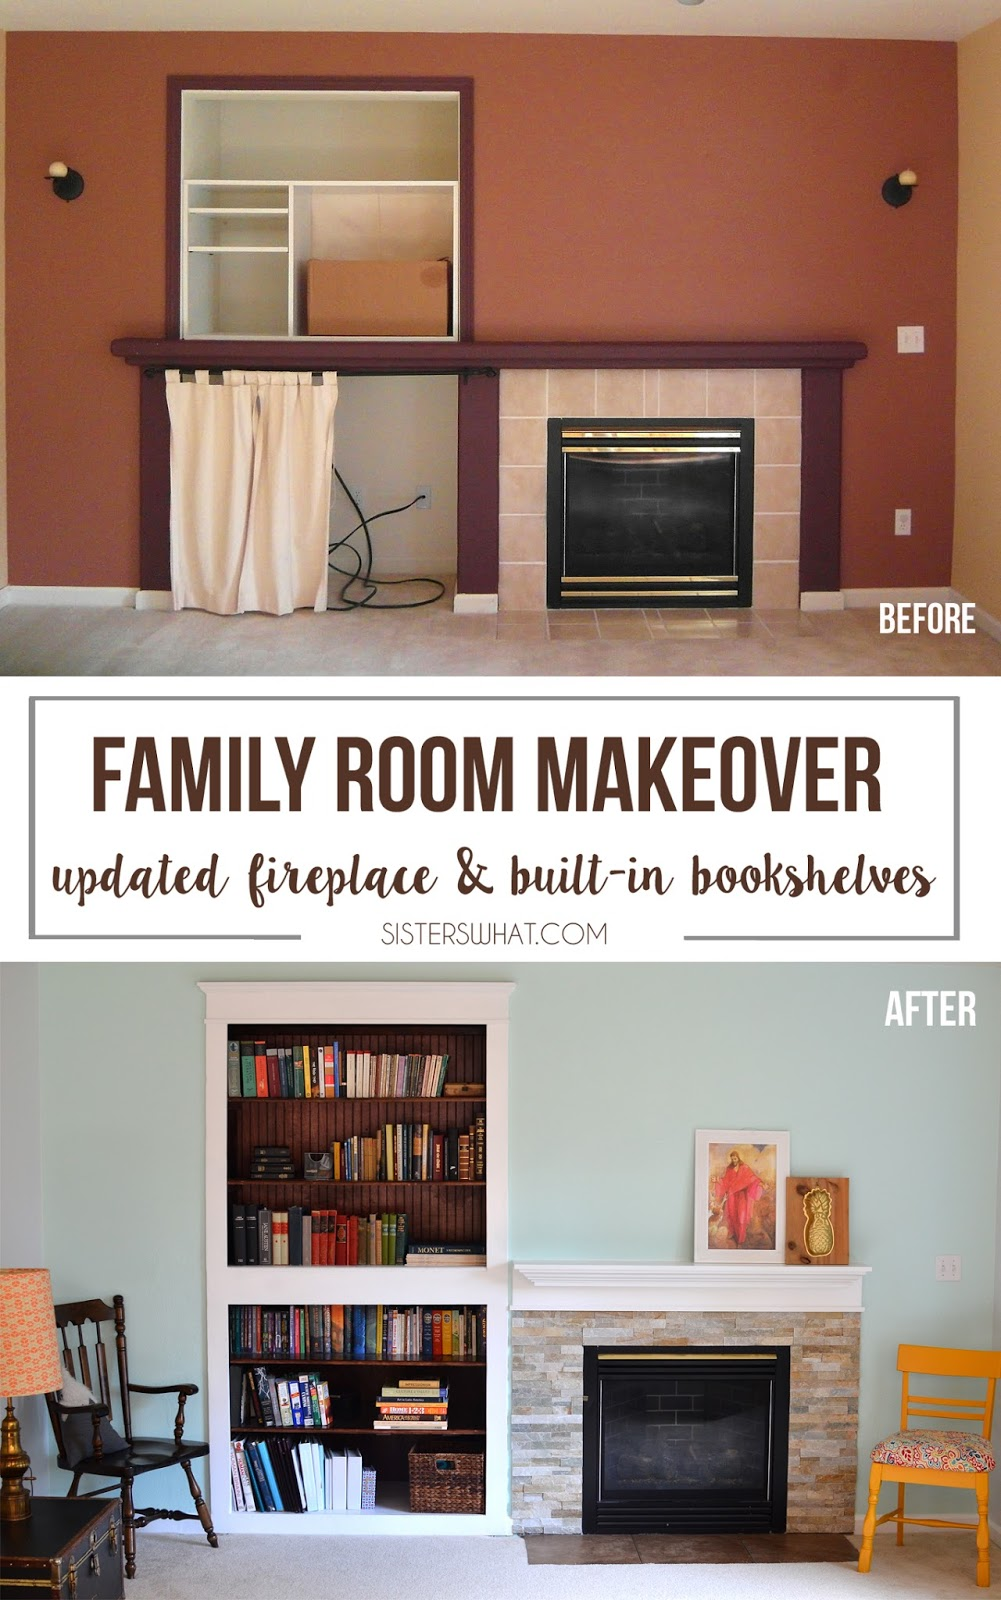 Family Room makeover with new built in bookshelves and a new mantel with new tile around the fire.